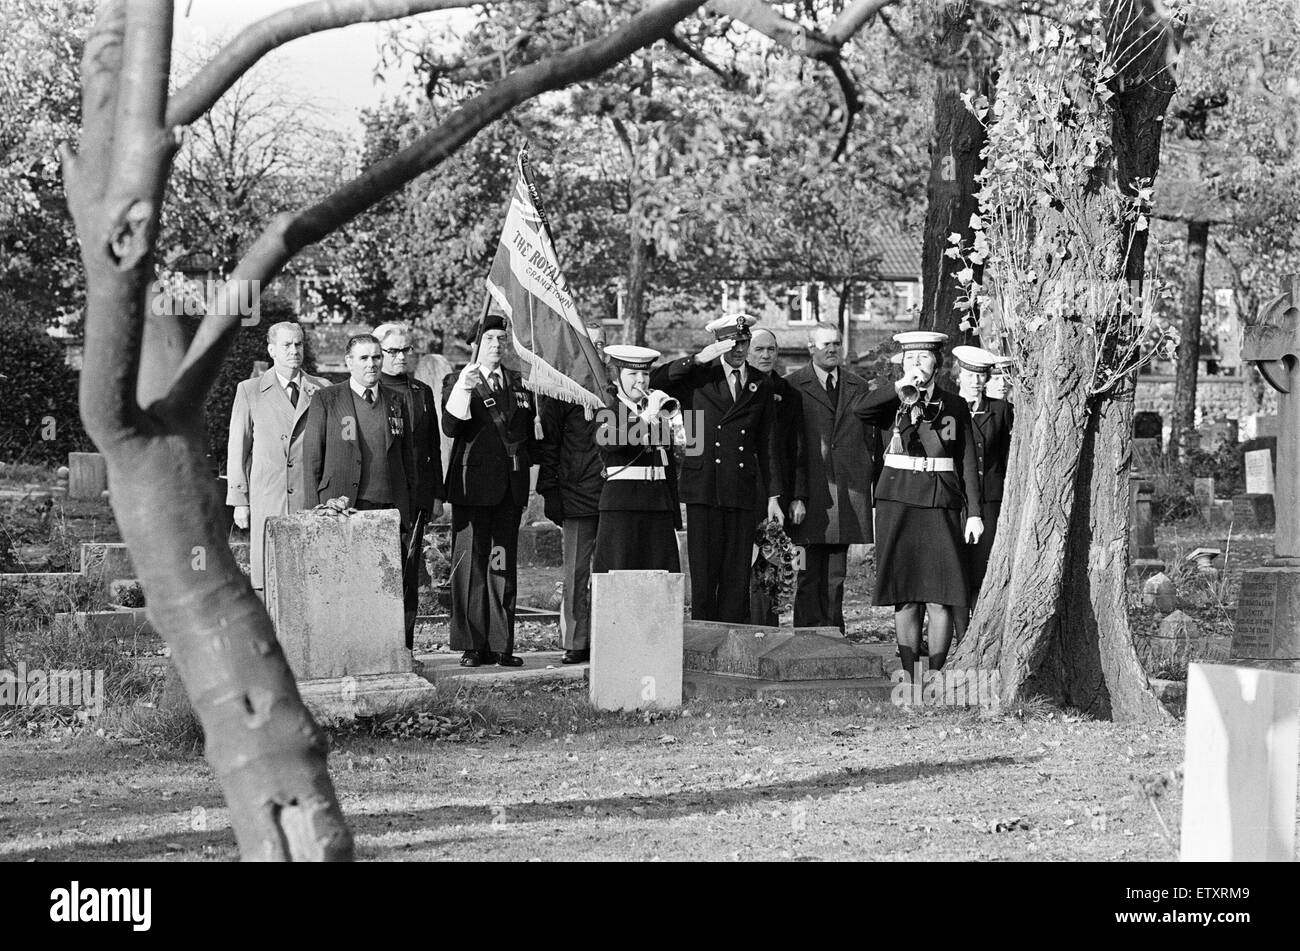 Members of the Grangetown branch of the Royal ritich Legion, at Easton Cemetery, to pay tribute at the graves of - Stock Image